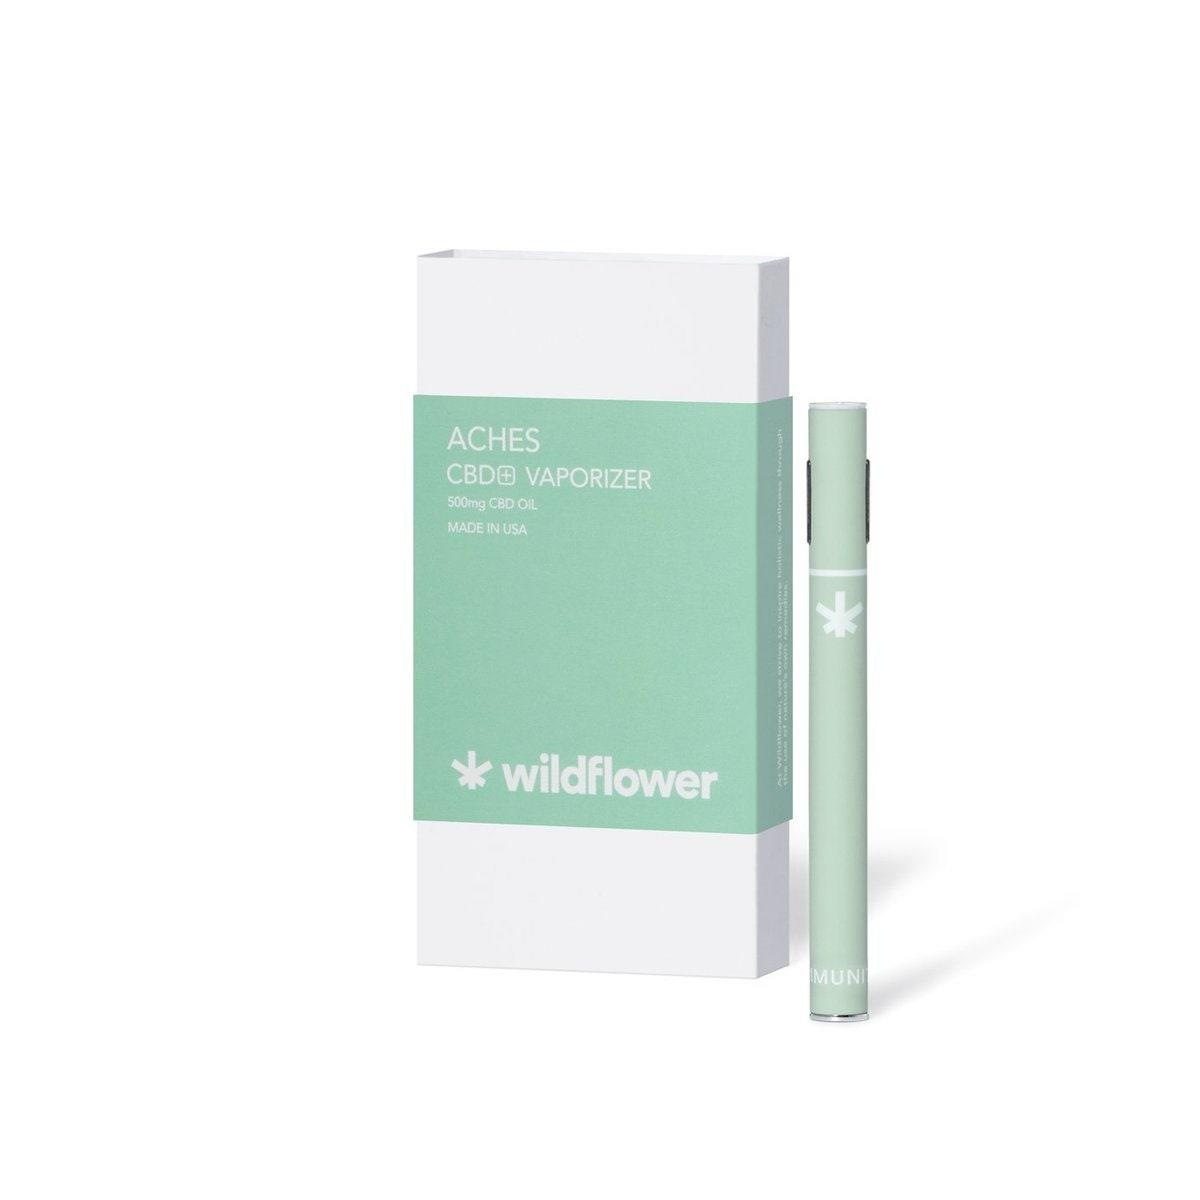 """<p>What cannabis user hasn't wondered if a little puff would help with a head cold or other common illnesses? Wildflower <a href=""""https://buywildflower.com/collections/vaporizers/products/immunity-cbd-vaporizer"""" rel=""""nofollow noopener"""" target=""""_blank"""" data-ylk=""""slk:crafted an Immunity vaporizer"""" class=""""link rapid-noclick-resp"""">crafted an Immunity vaporizer</a> aimed to treat symptoms such as coughs, headaches, and blocked sinuses. The hemp-based formula also contains eucalyptus oil. It's sold both in a disposable pen and as a cartridge for the rechargeable vaporizer. There's also a <a href=""""https://buywildflower.com/collections/vaporizers/products/aches-cbd-vaporizer"""" rel=""""nofollow noopener"""" target=""""_blank"""" data-ylk=""""slk:formula for Aches"""" class=""""link rapid-noclick-resp"""">formula for Aches</a> which highlights cannabis's anti-inflammatory properties.</p> <p><strong>$60</strong> (<a href=""""https://buywildflower.com/collections/vaporizers"""" rel=""""nofollow noopener"""" target=""""_blank"""" data-ylk=""""slk:Shop Now"""" class=""""link rapid-noclick-resp"""">Shop Now</a>)</p>"""